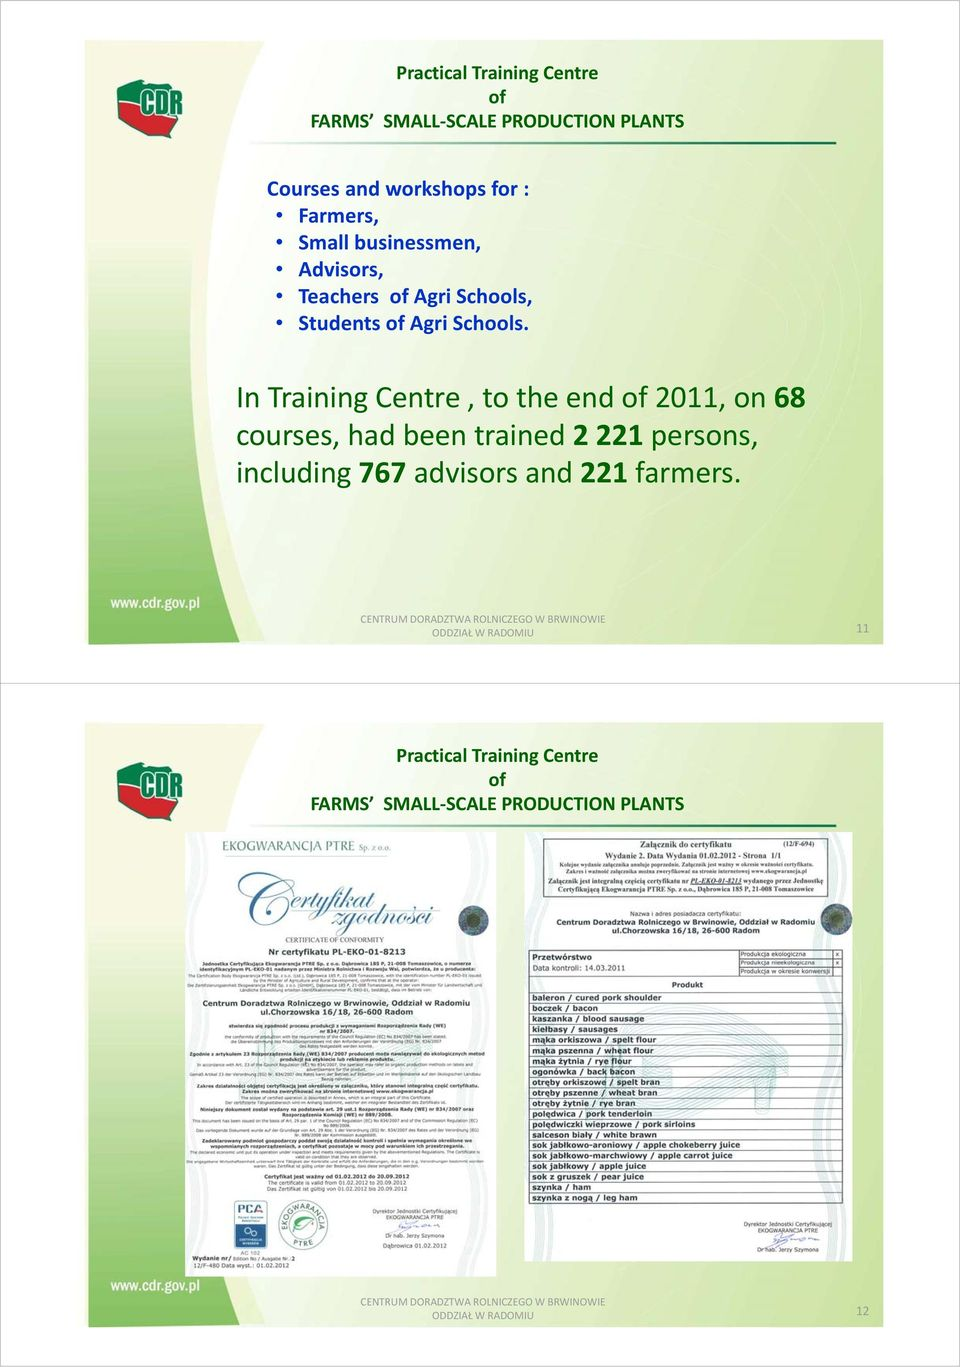 In Training Centre, to the end of 2011, on 68 courses, had been trained 2 221 persons, including 767